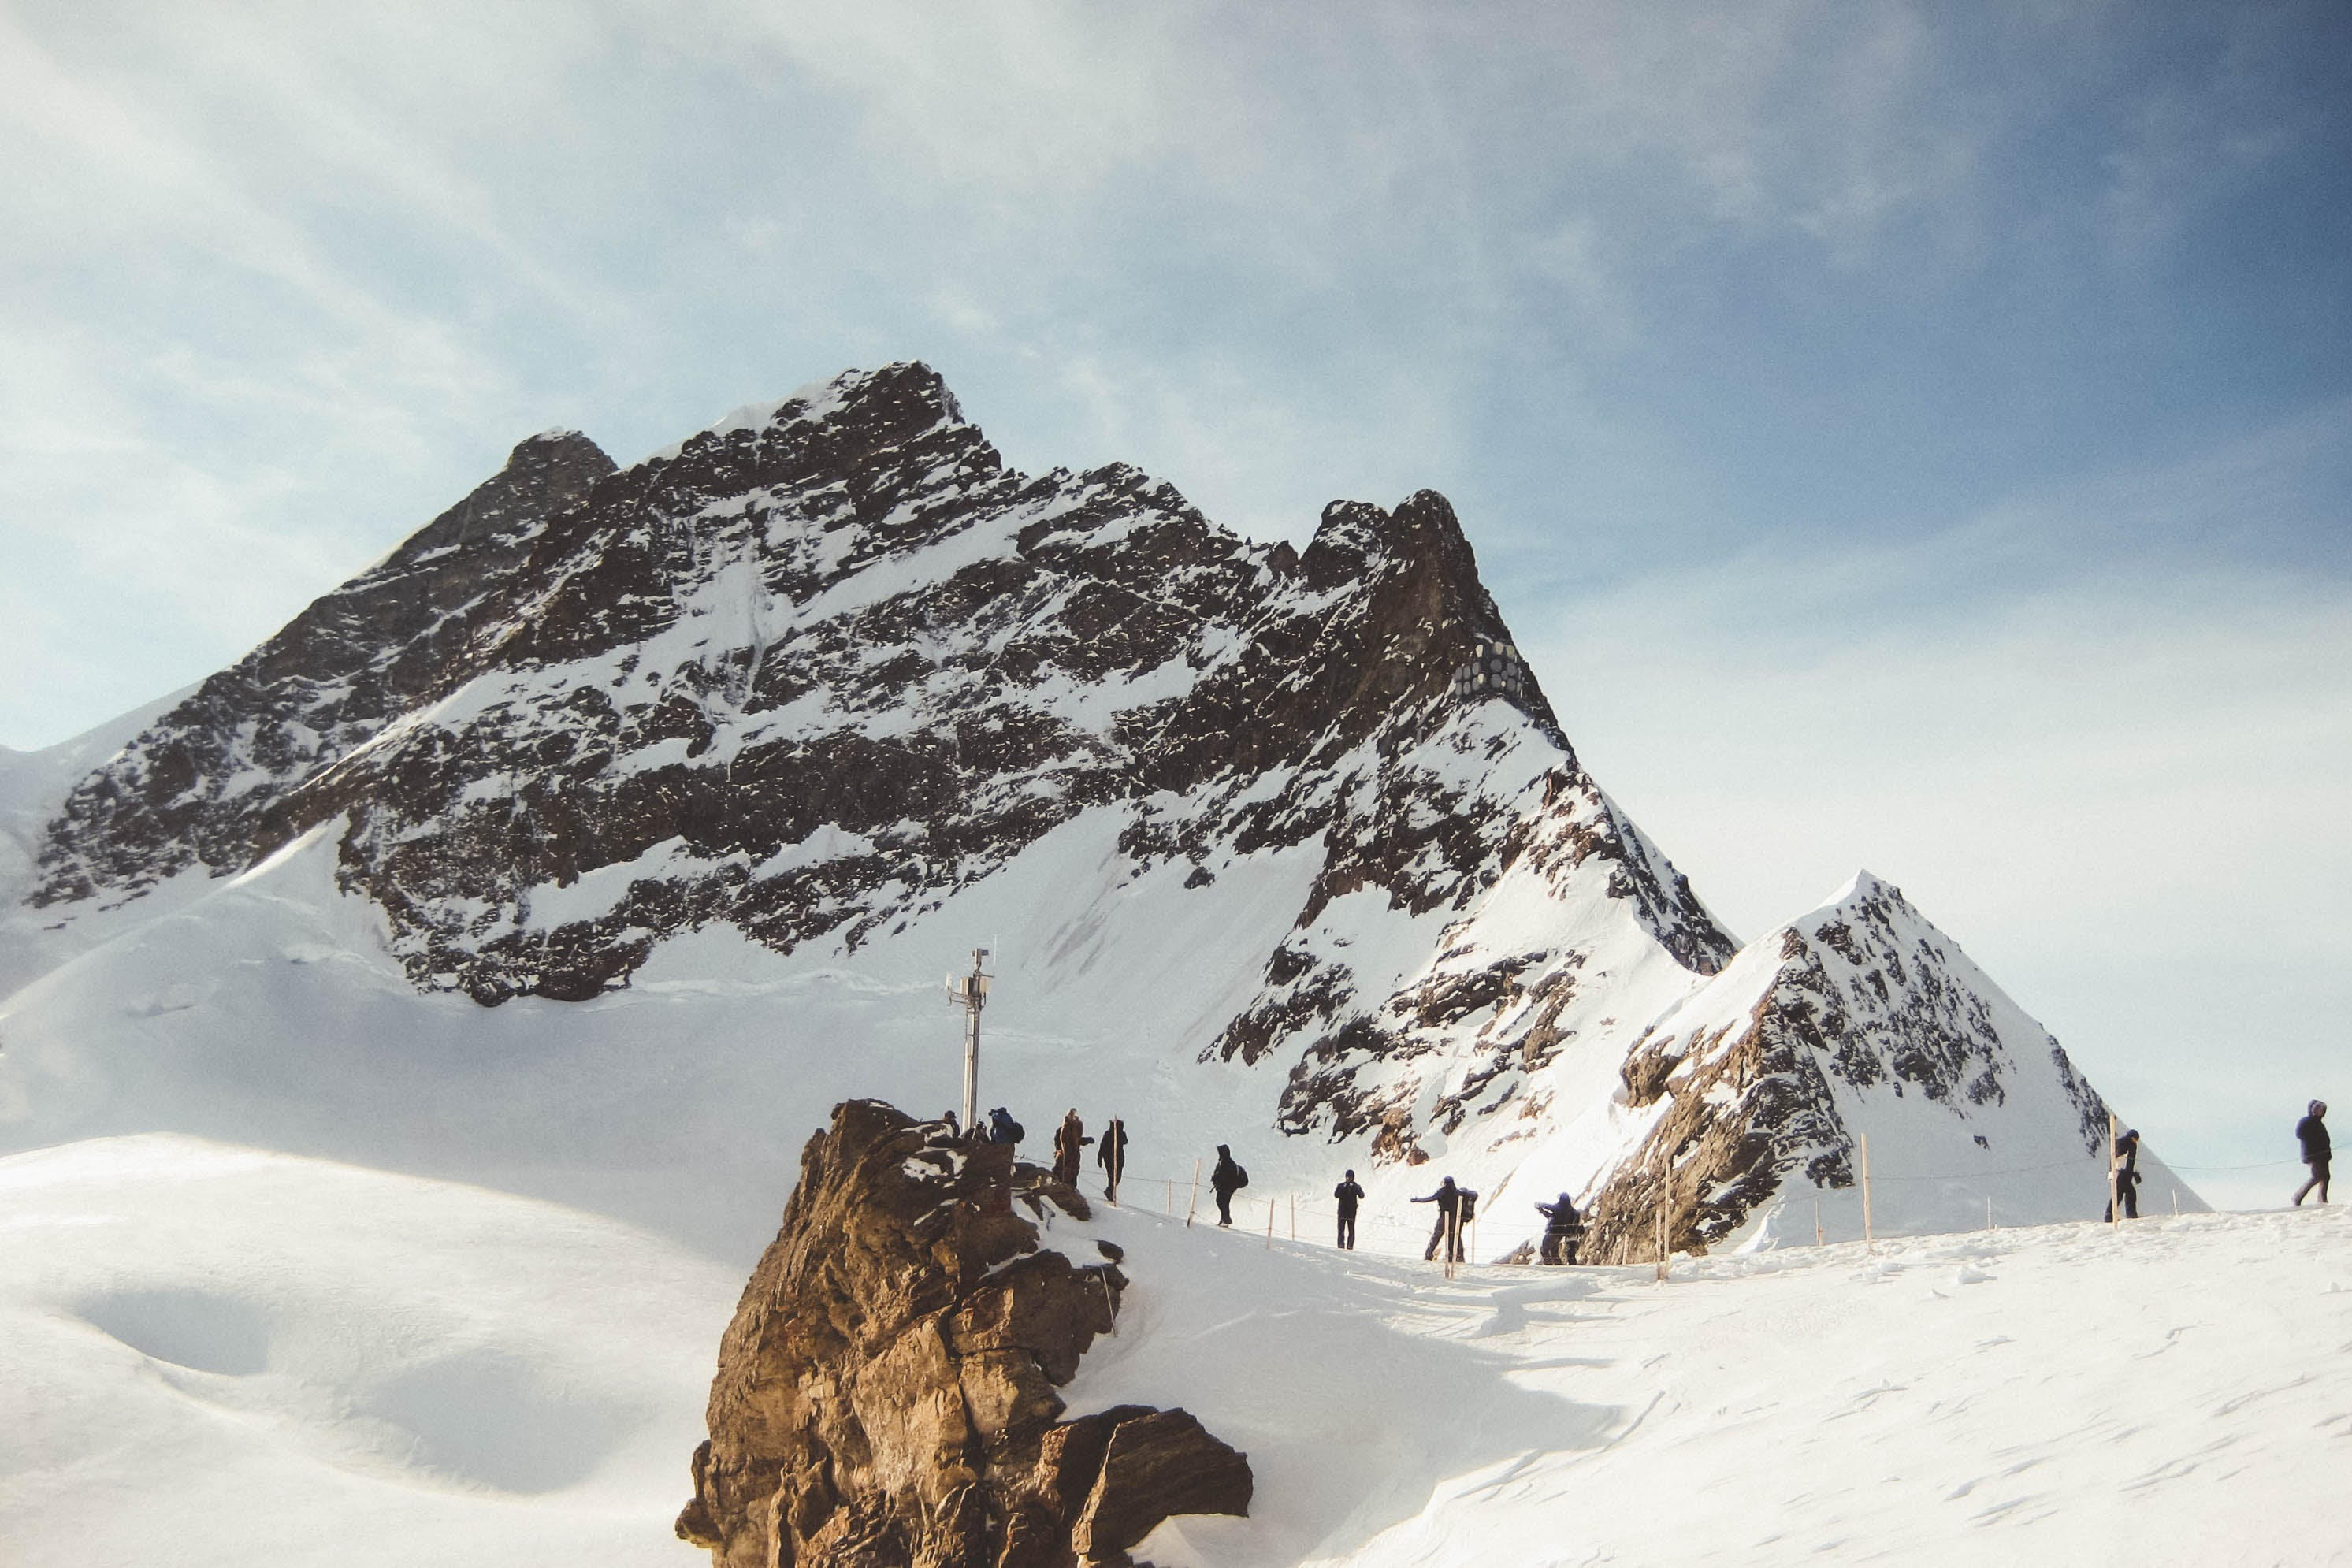 People Walking on Snowy Mountain